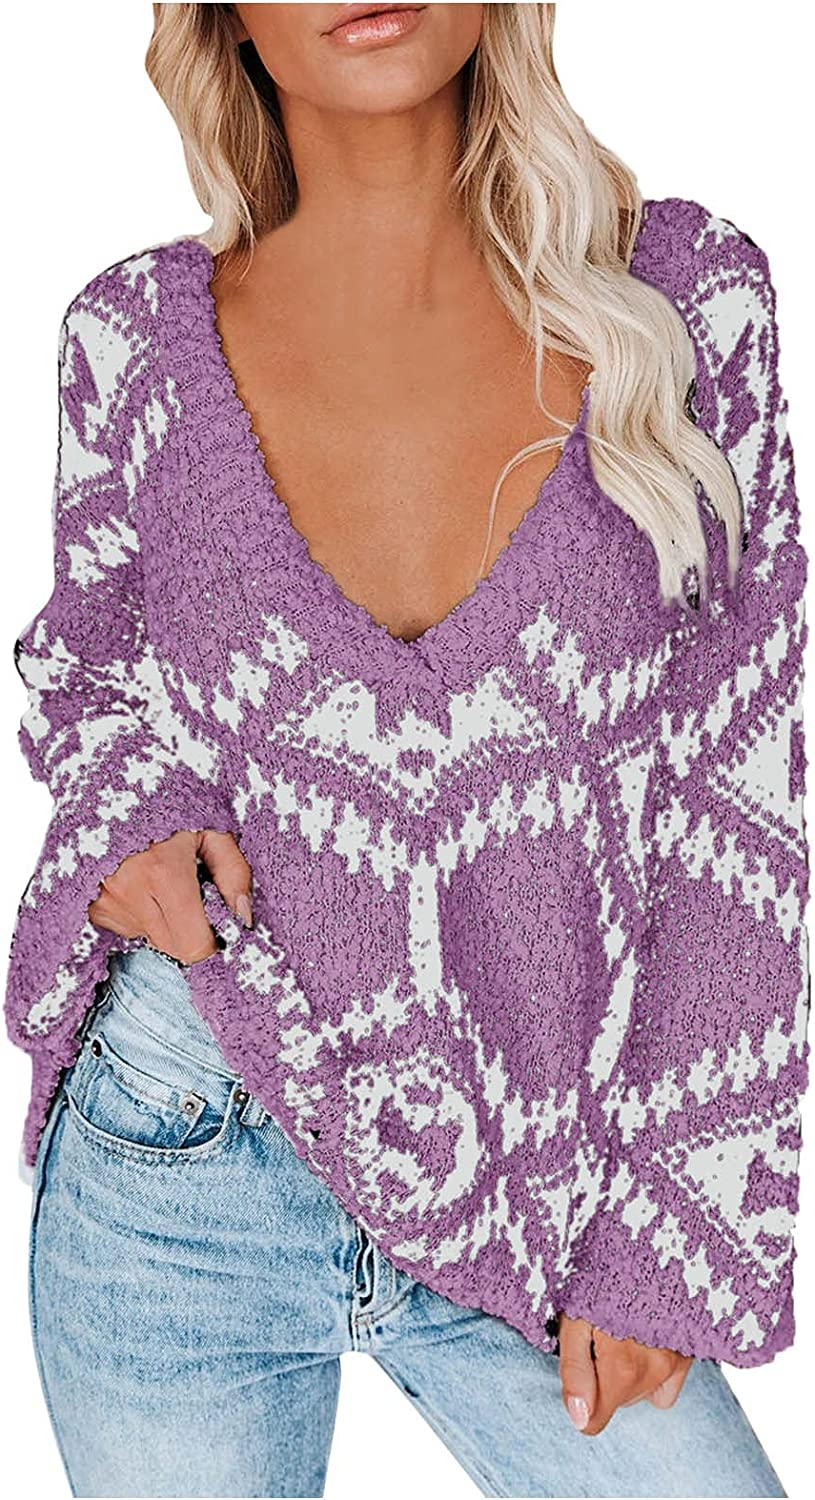 MAYW Womens Sweaters Pullover Oversized Deep V Neck Off Shoulder Tops Long Sleeves Loose Knit Sweater